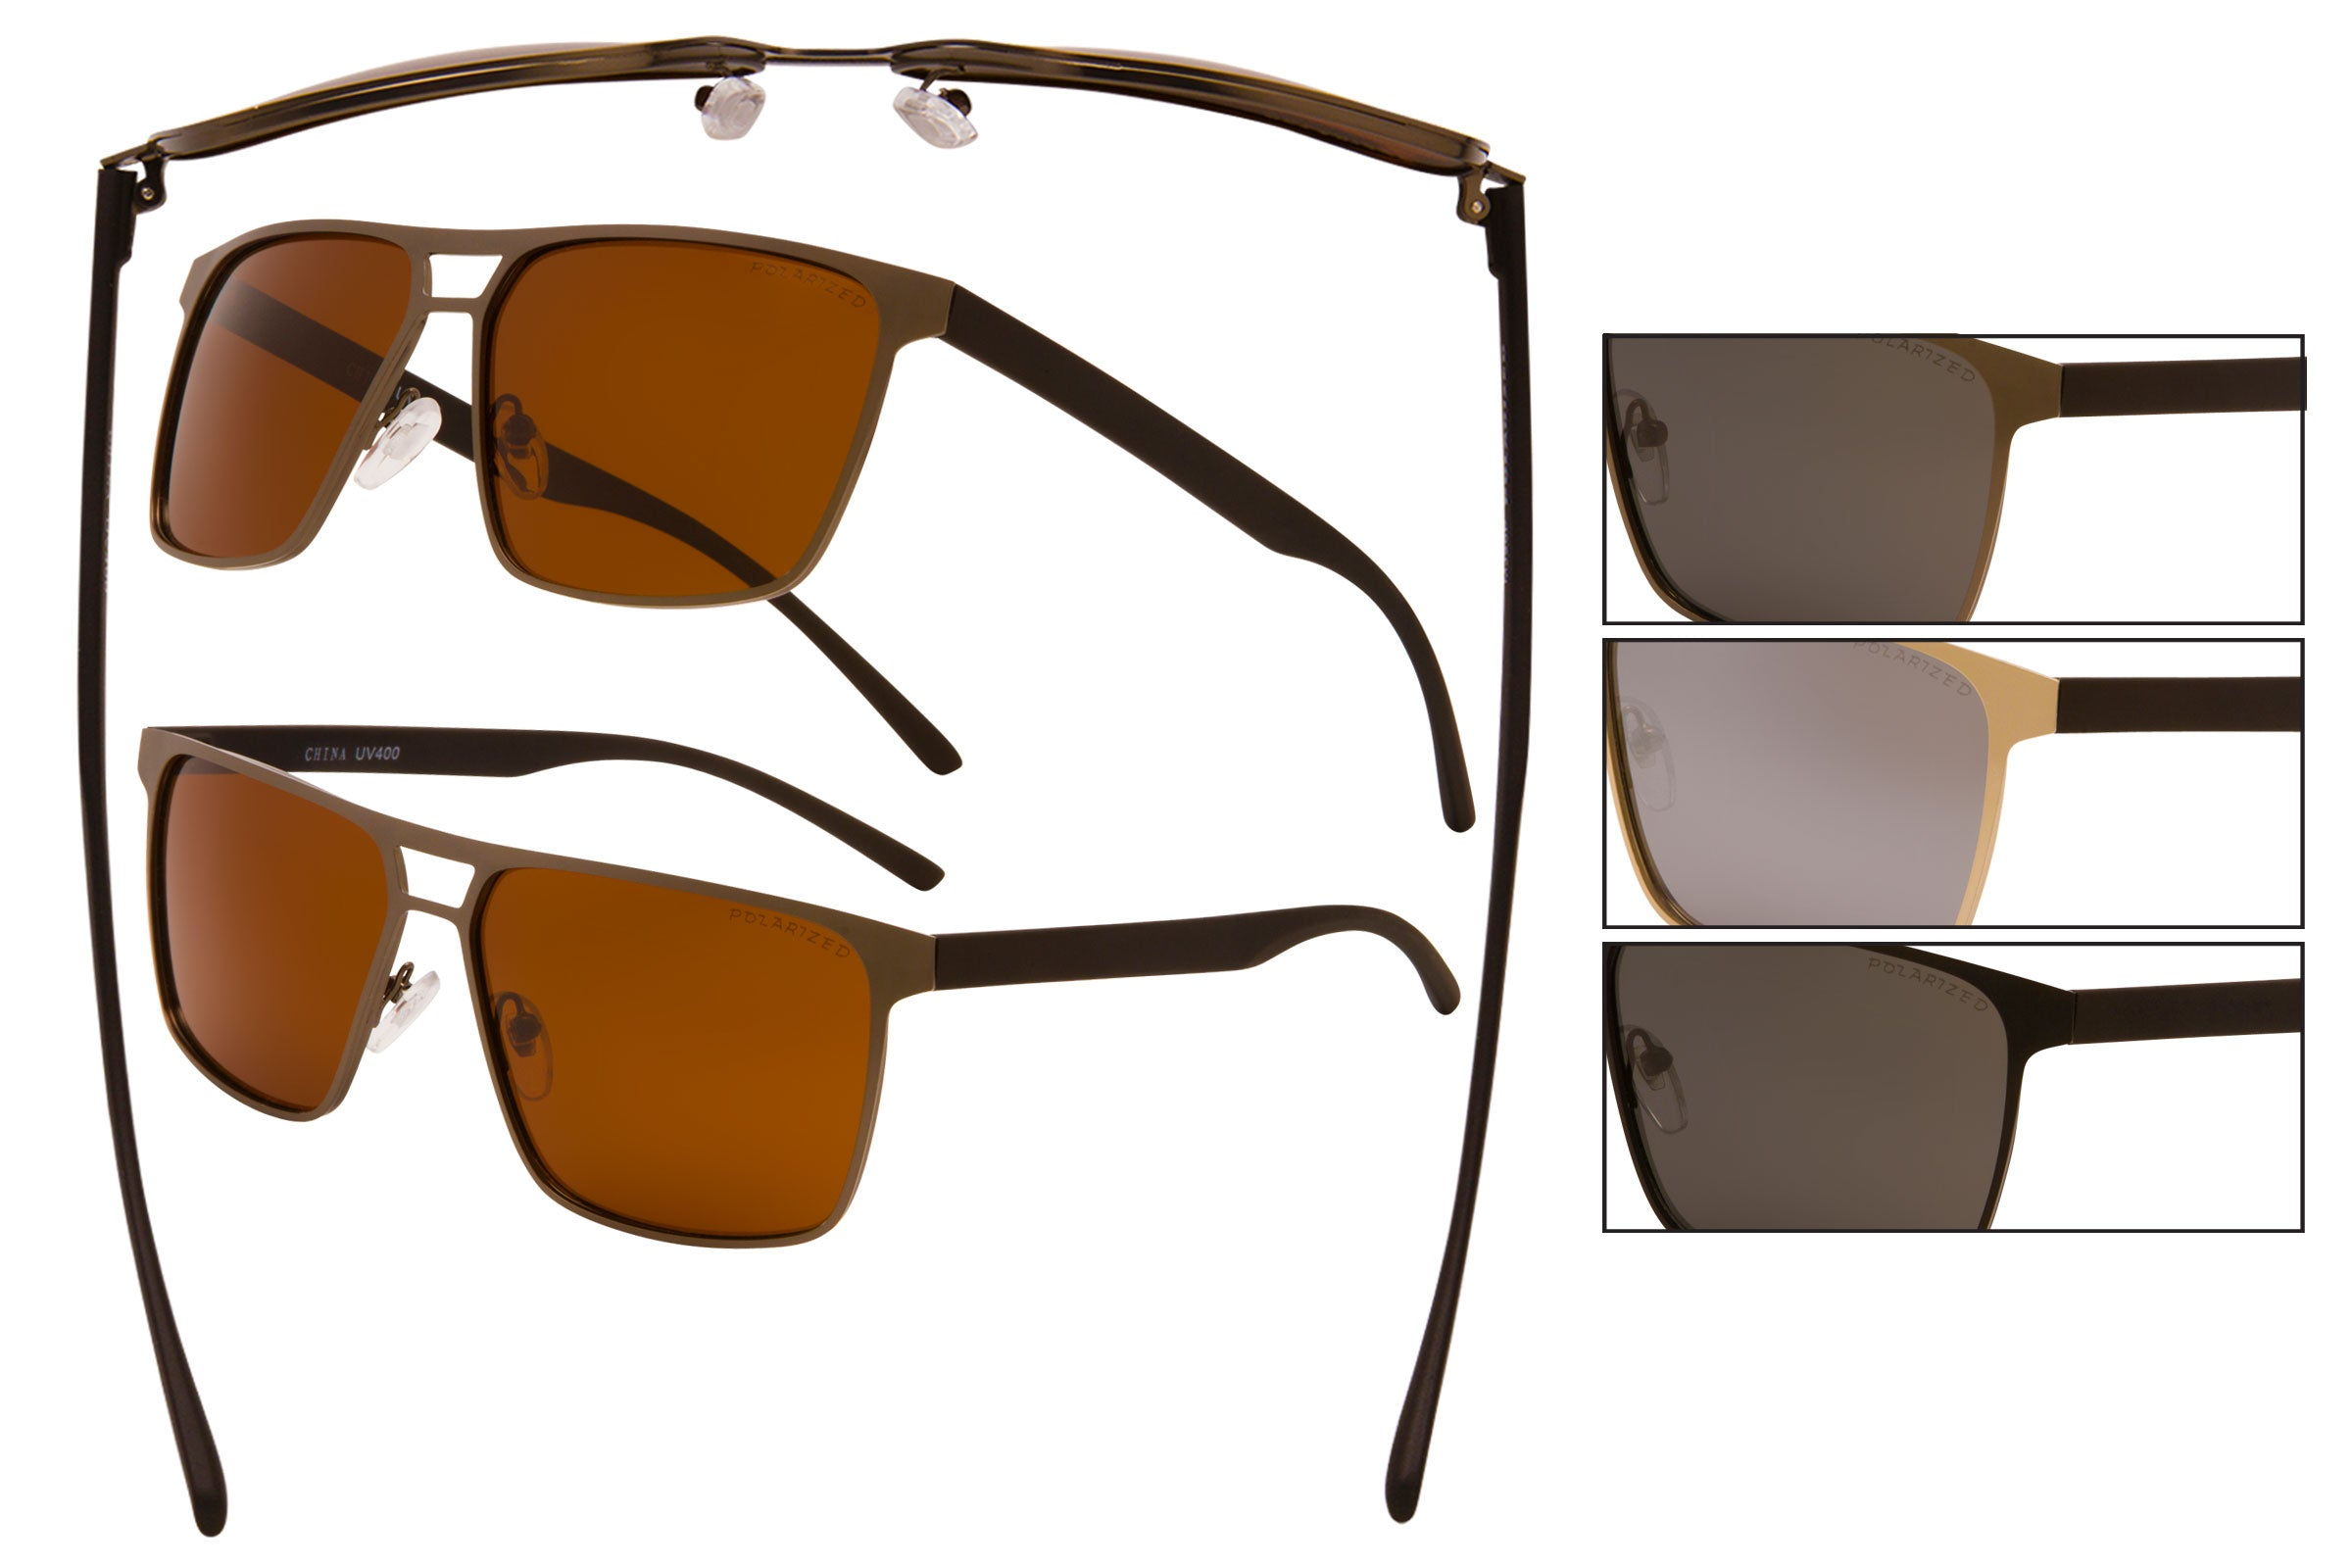 MJ20P - Polarized Pilot Sunglasses